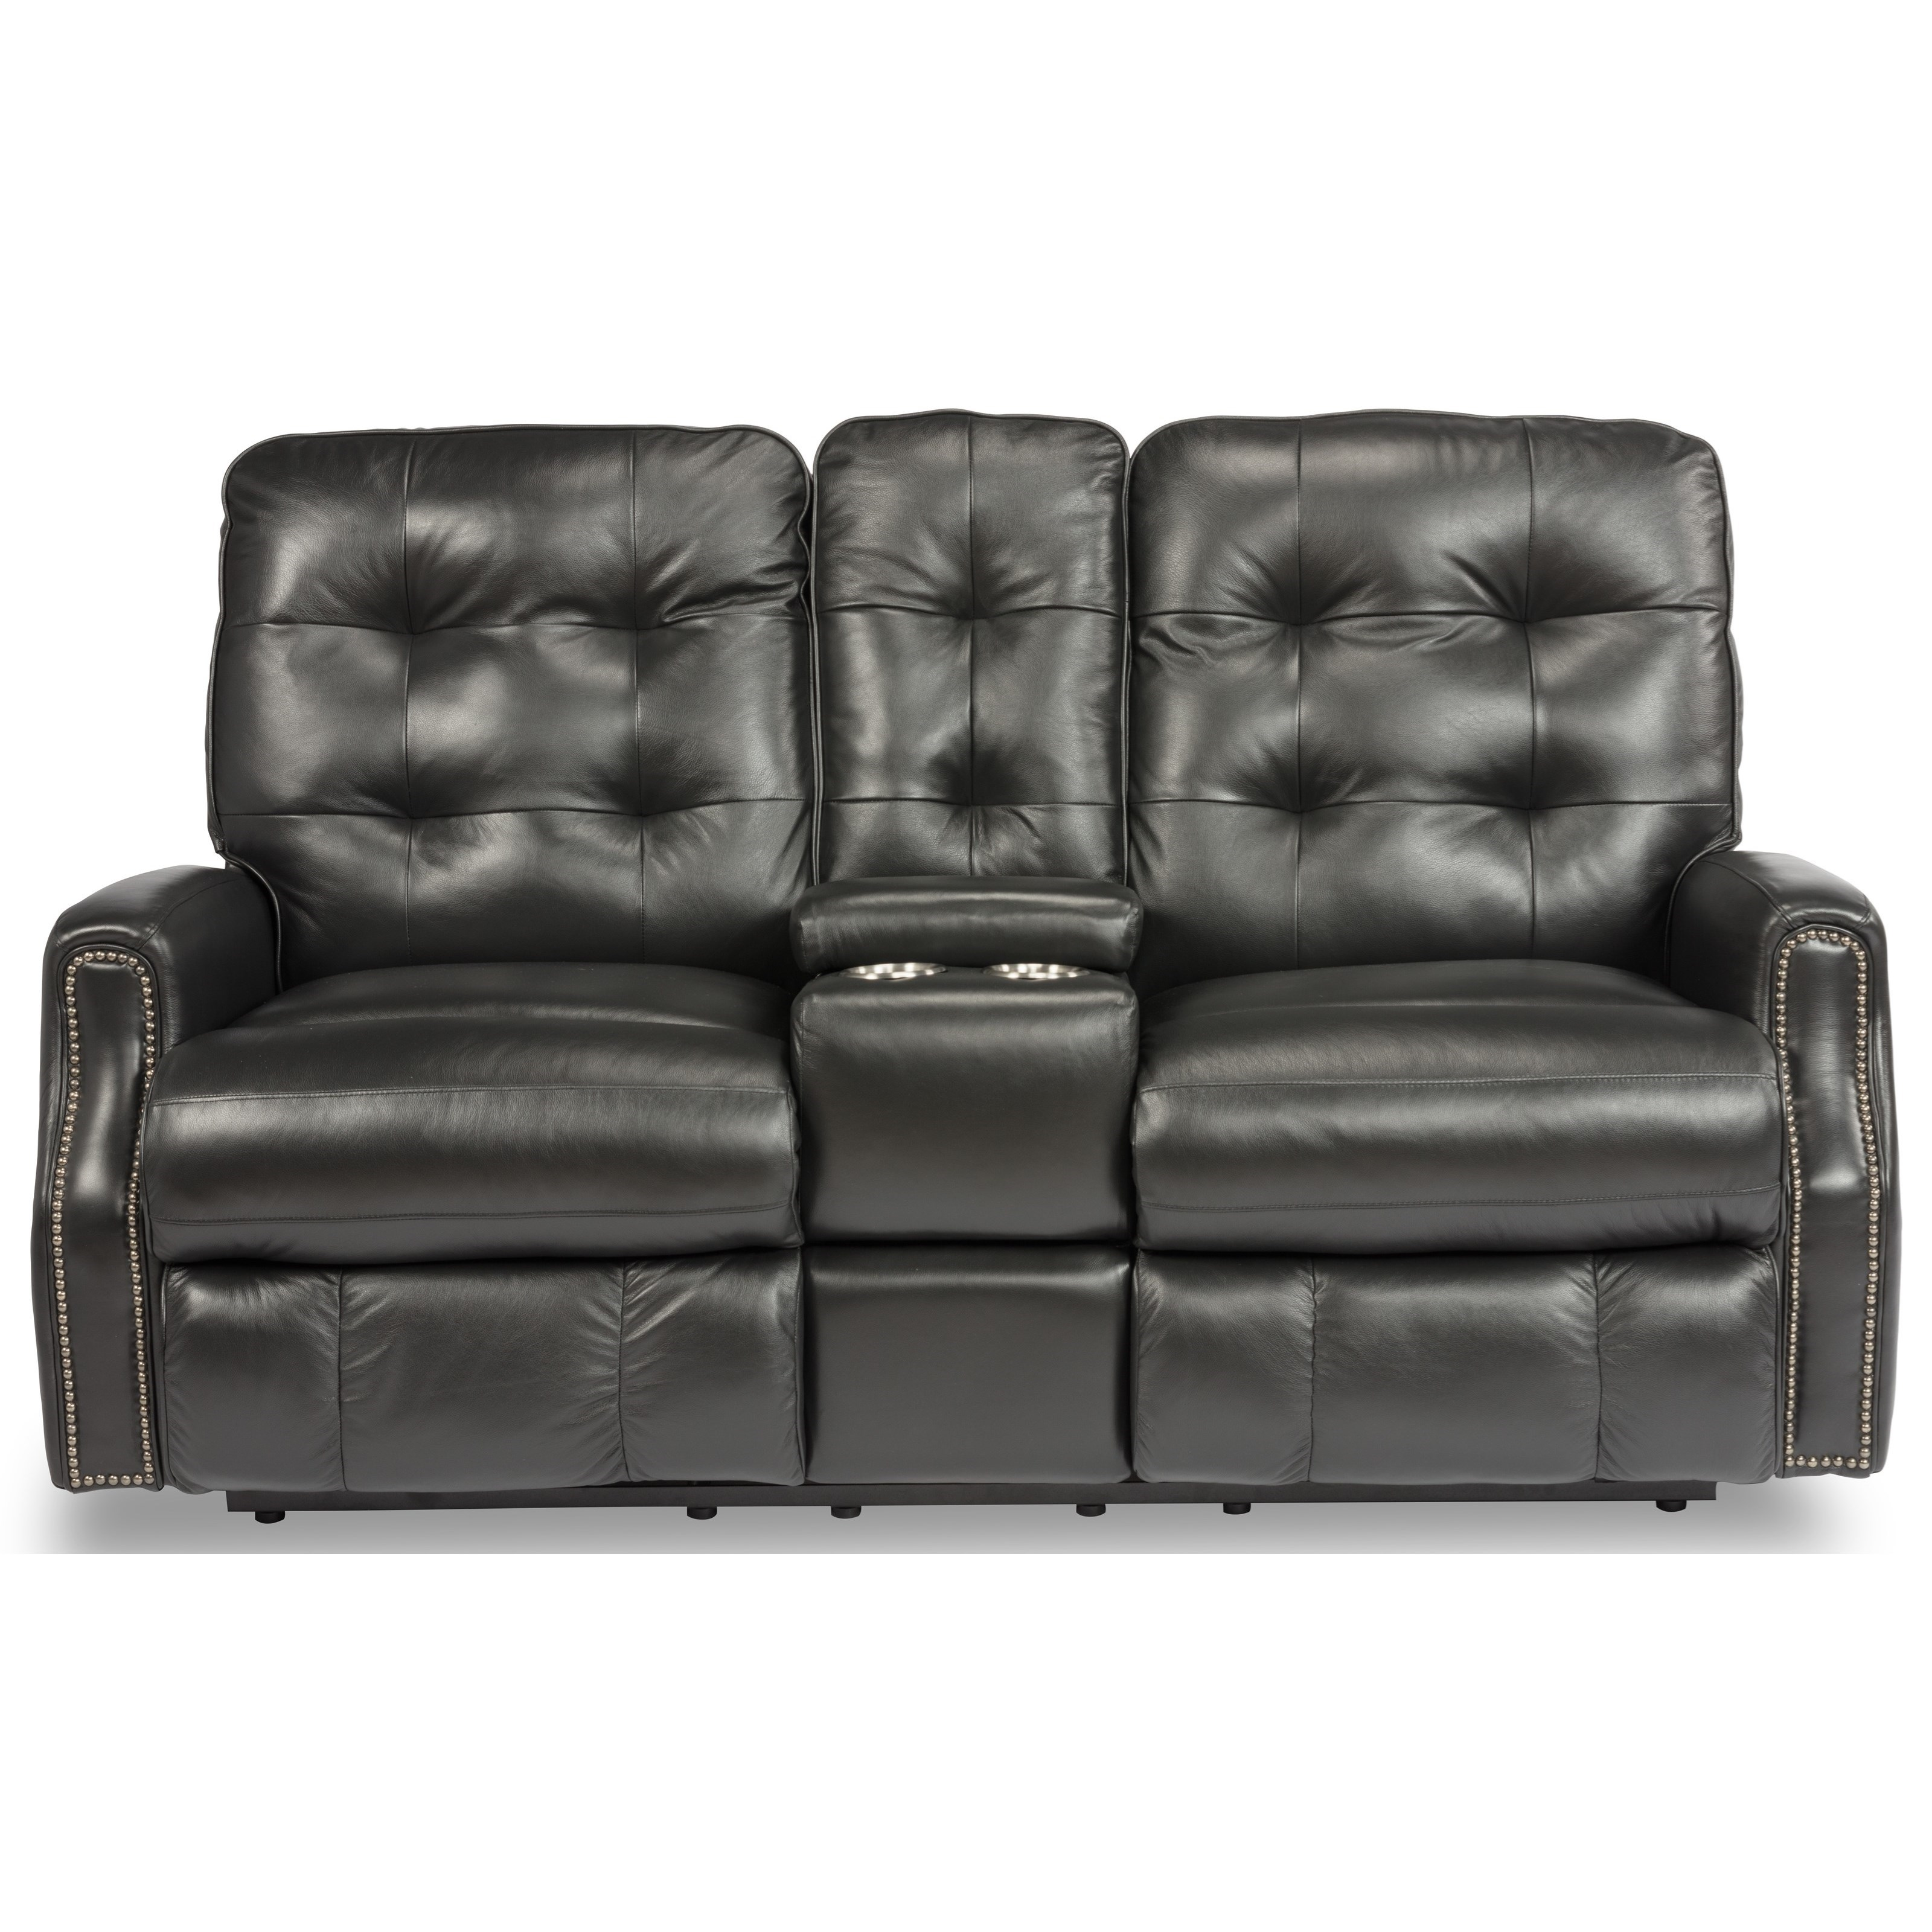 Devon Power Reclining Loveseat with Console by Flexsteel at Furniture and ApplianceMart